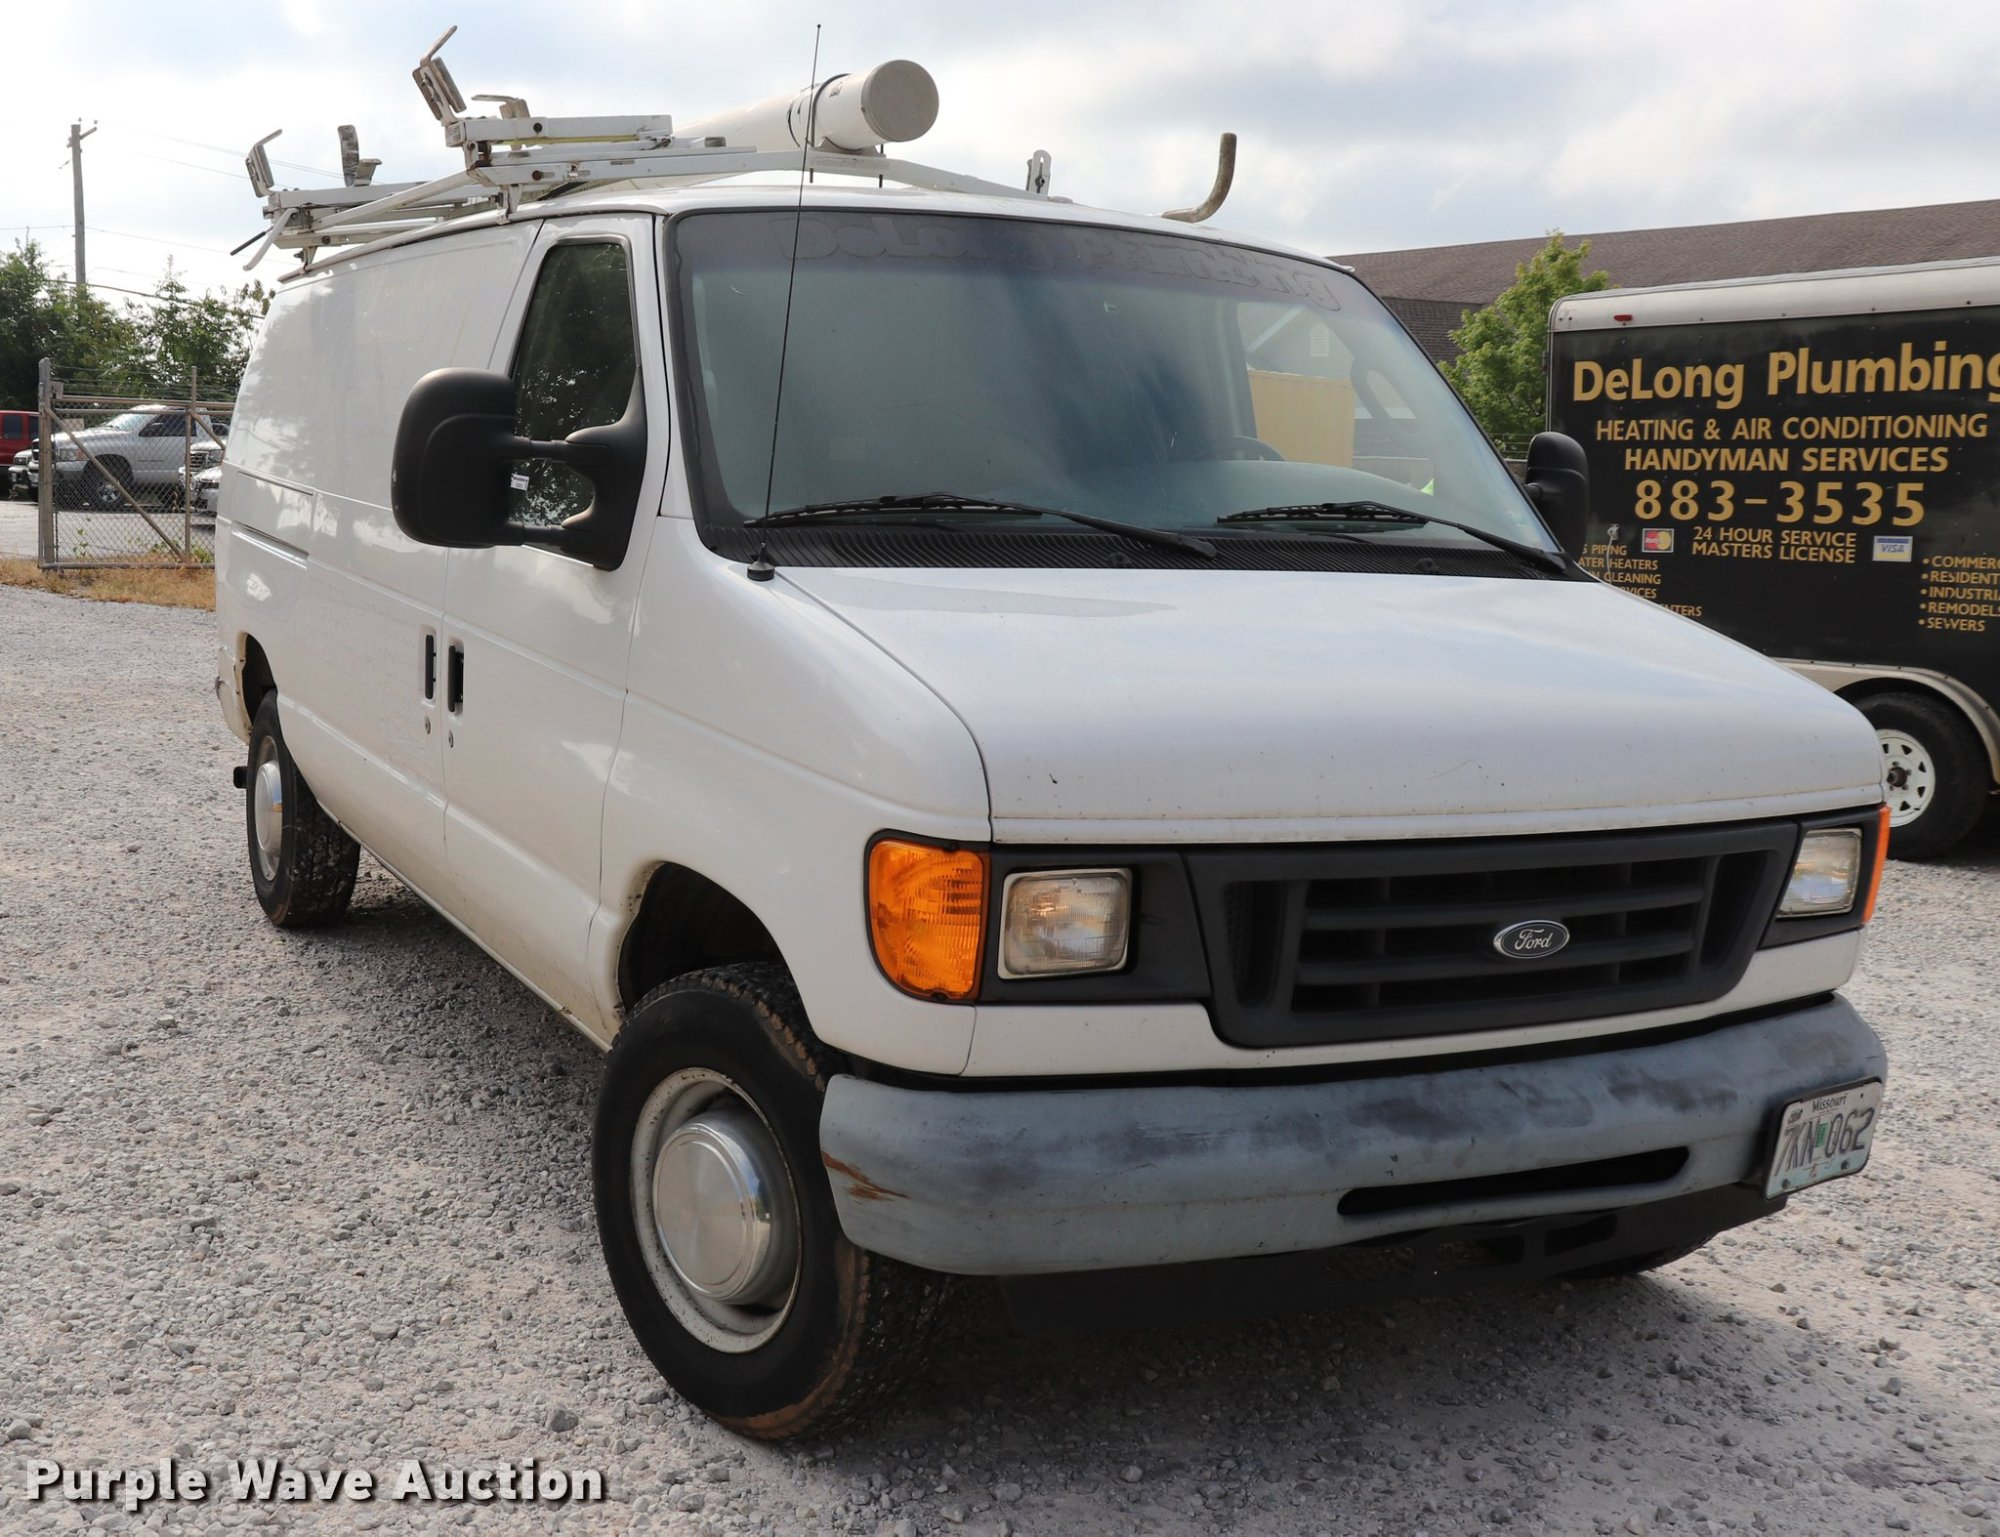 hight resolution of dq9353 image for item dq9353 2006 ford econoline e250 van